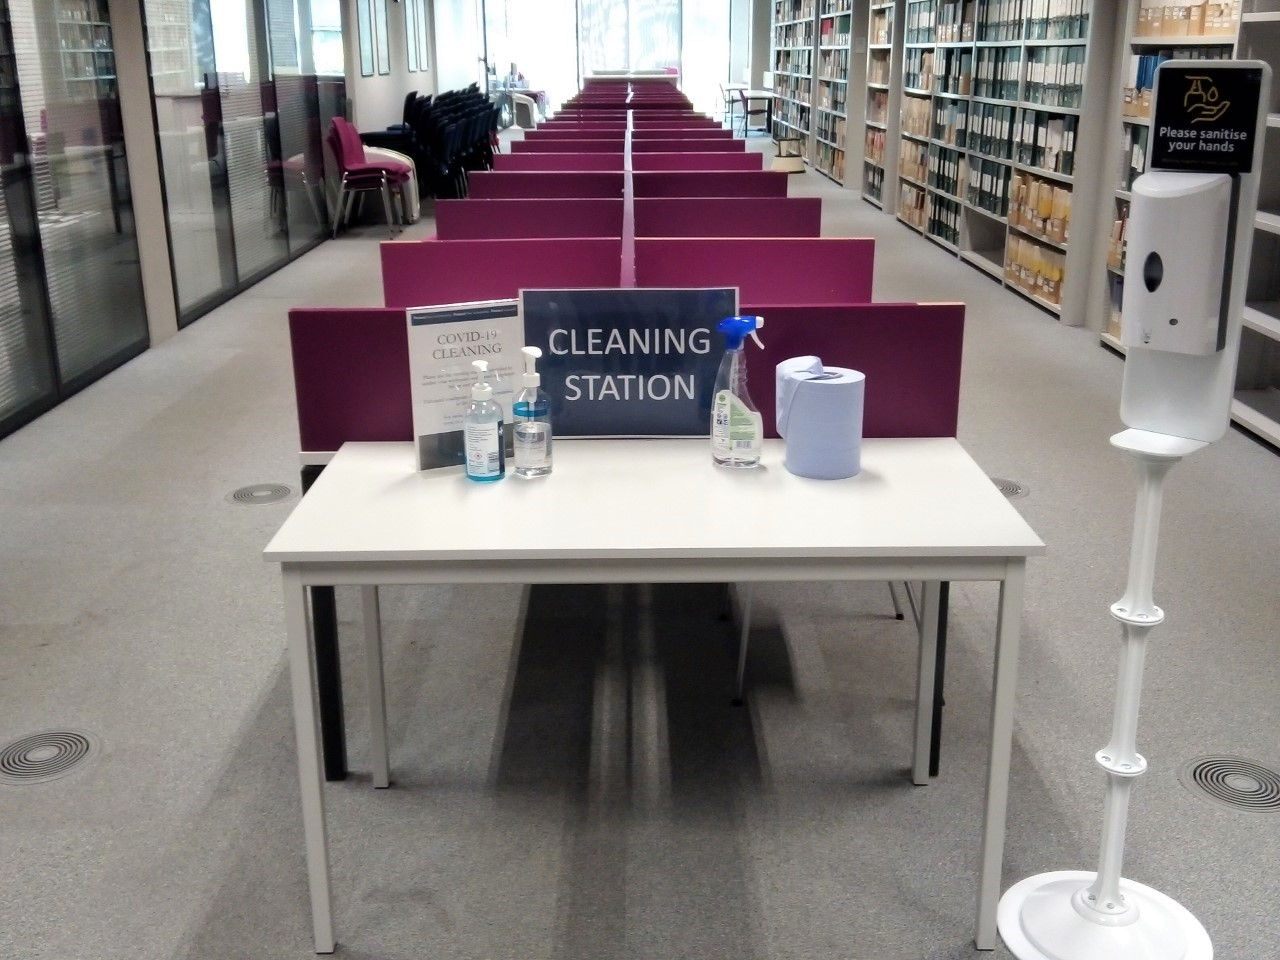 Photo of a cleaning station. A table which has cleaning supplies on it for use in the library.